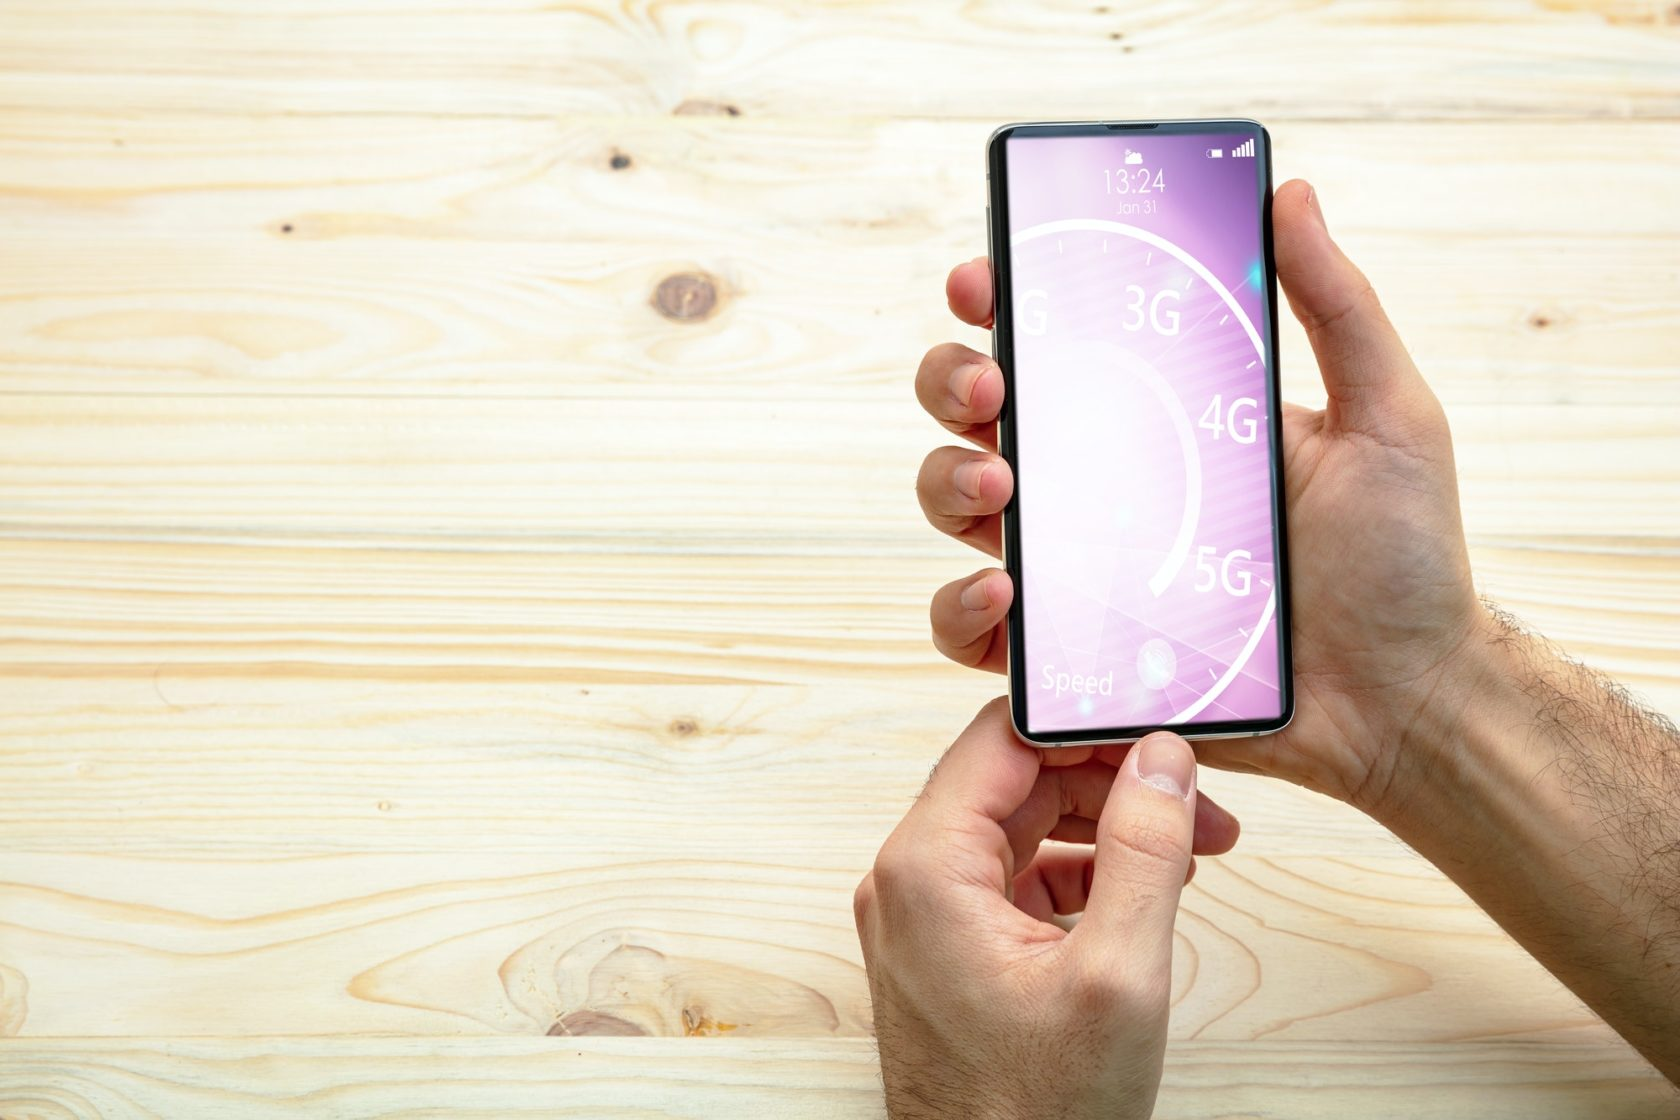 Man holding a smartphone, internet speed test on the screen, wooden background, copy space